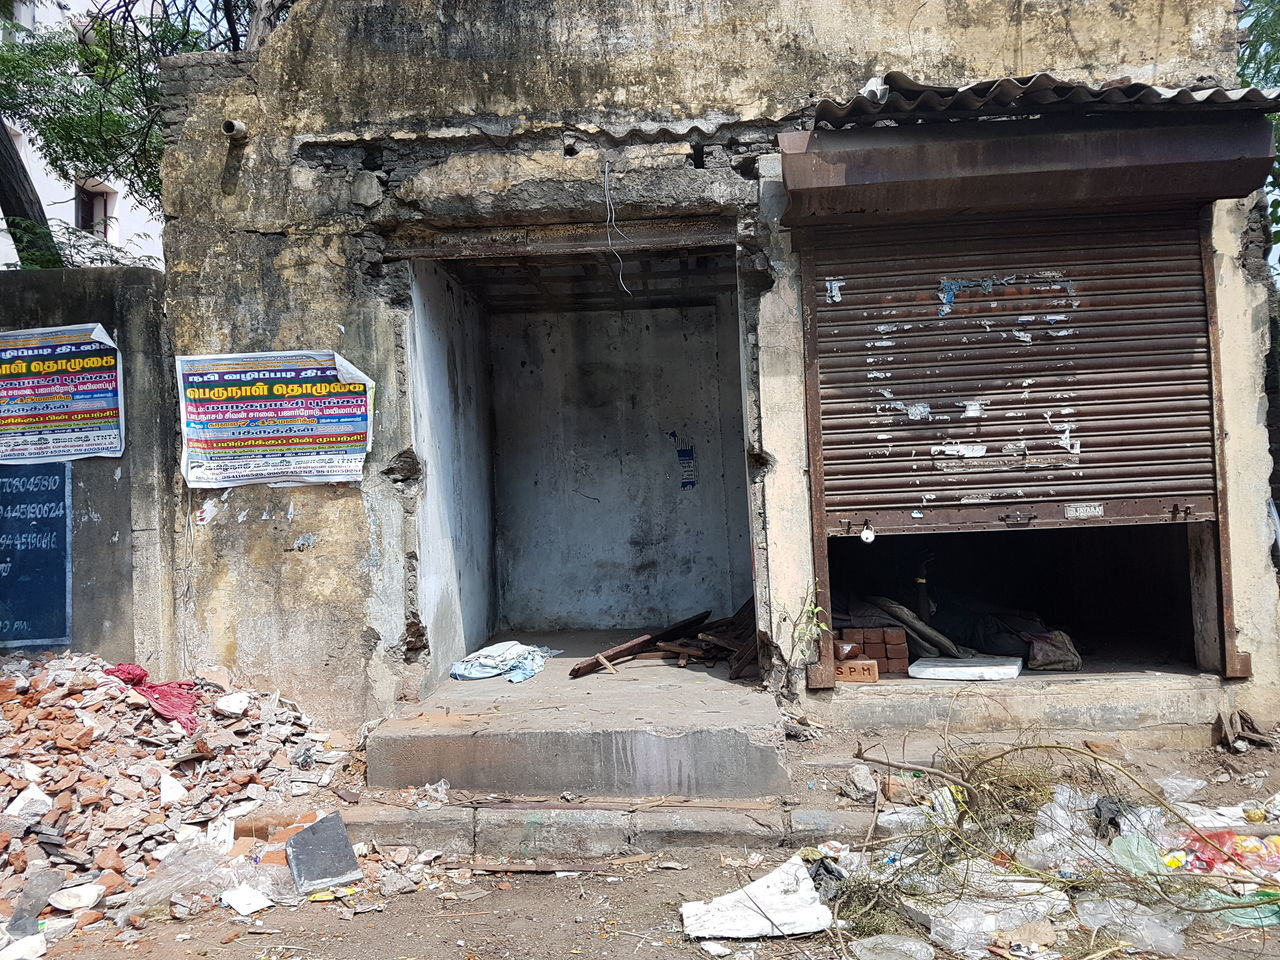 Abandoned Architecture Bad Condition Broken Building Built Structure Chennai Closed Damaged Day Deterioration Dirty Empty Garbage India Messy Mylapore No People Obsolete Old Outdoors Residential Structure Run-down Weathered